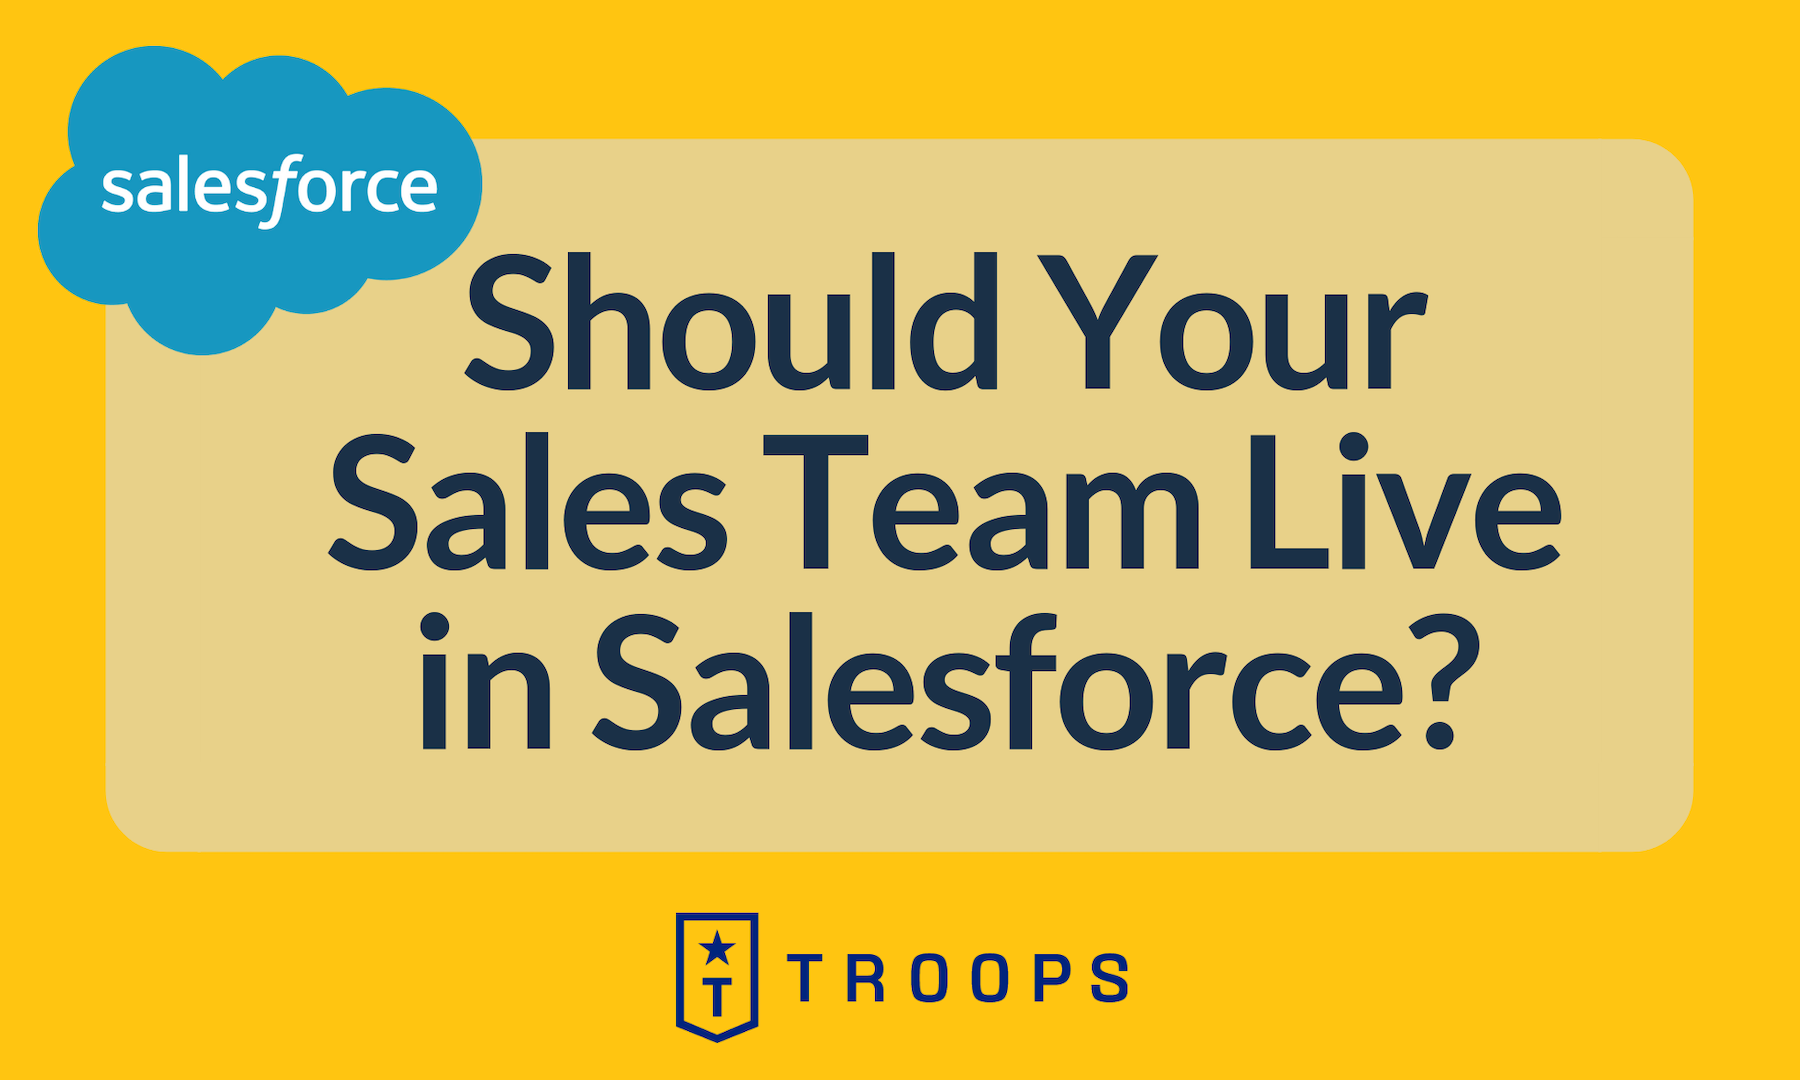 Should Your Sales Team Live in Salesforce?